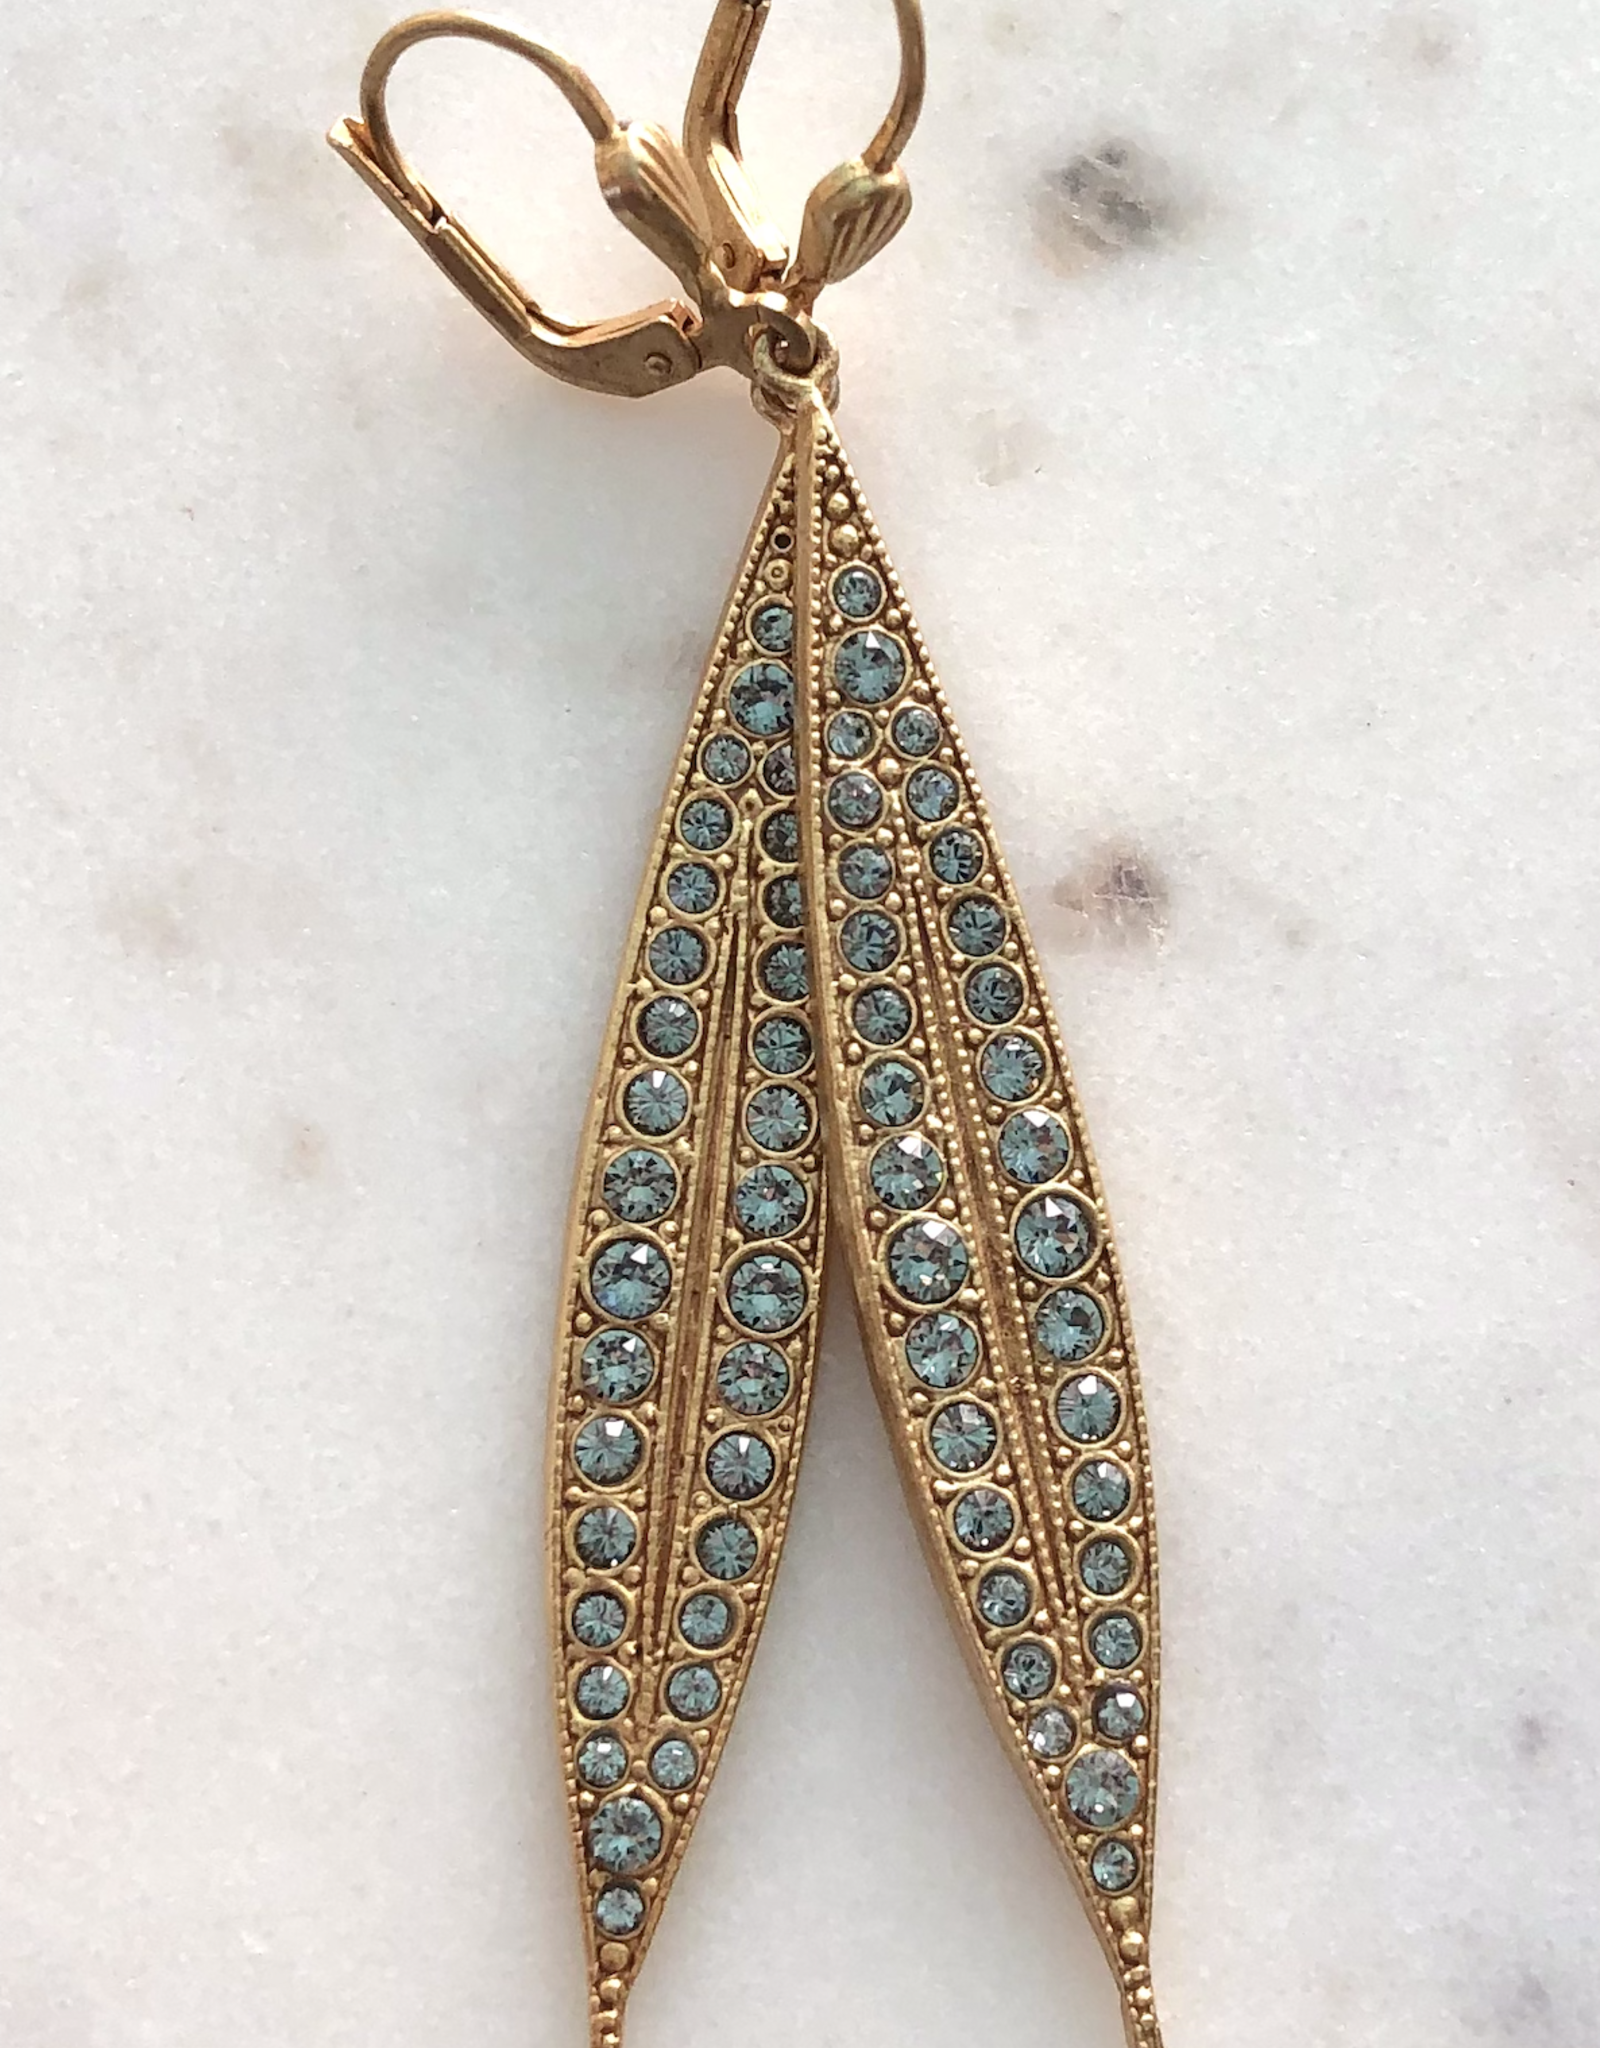 EARRING LONG SPEAR WITH RHINESTONES 2 INCHES GOLD